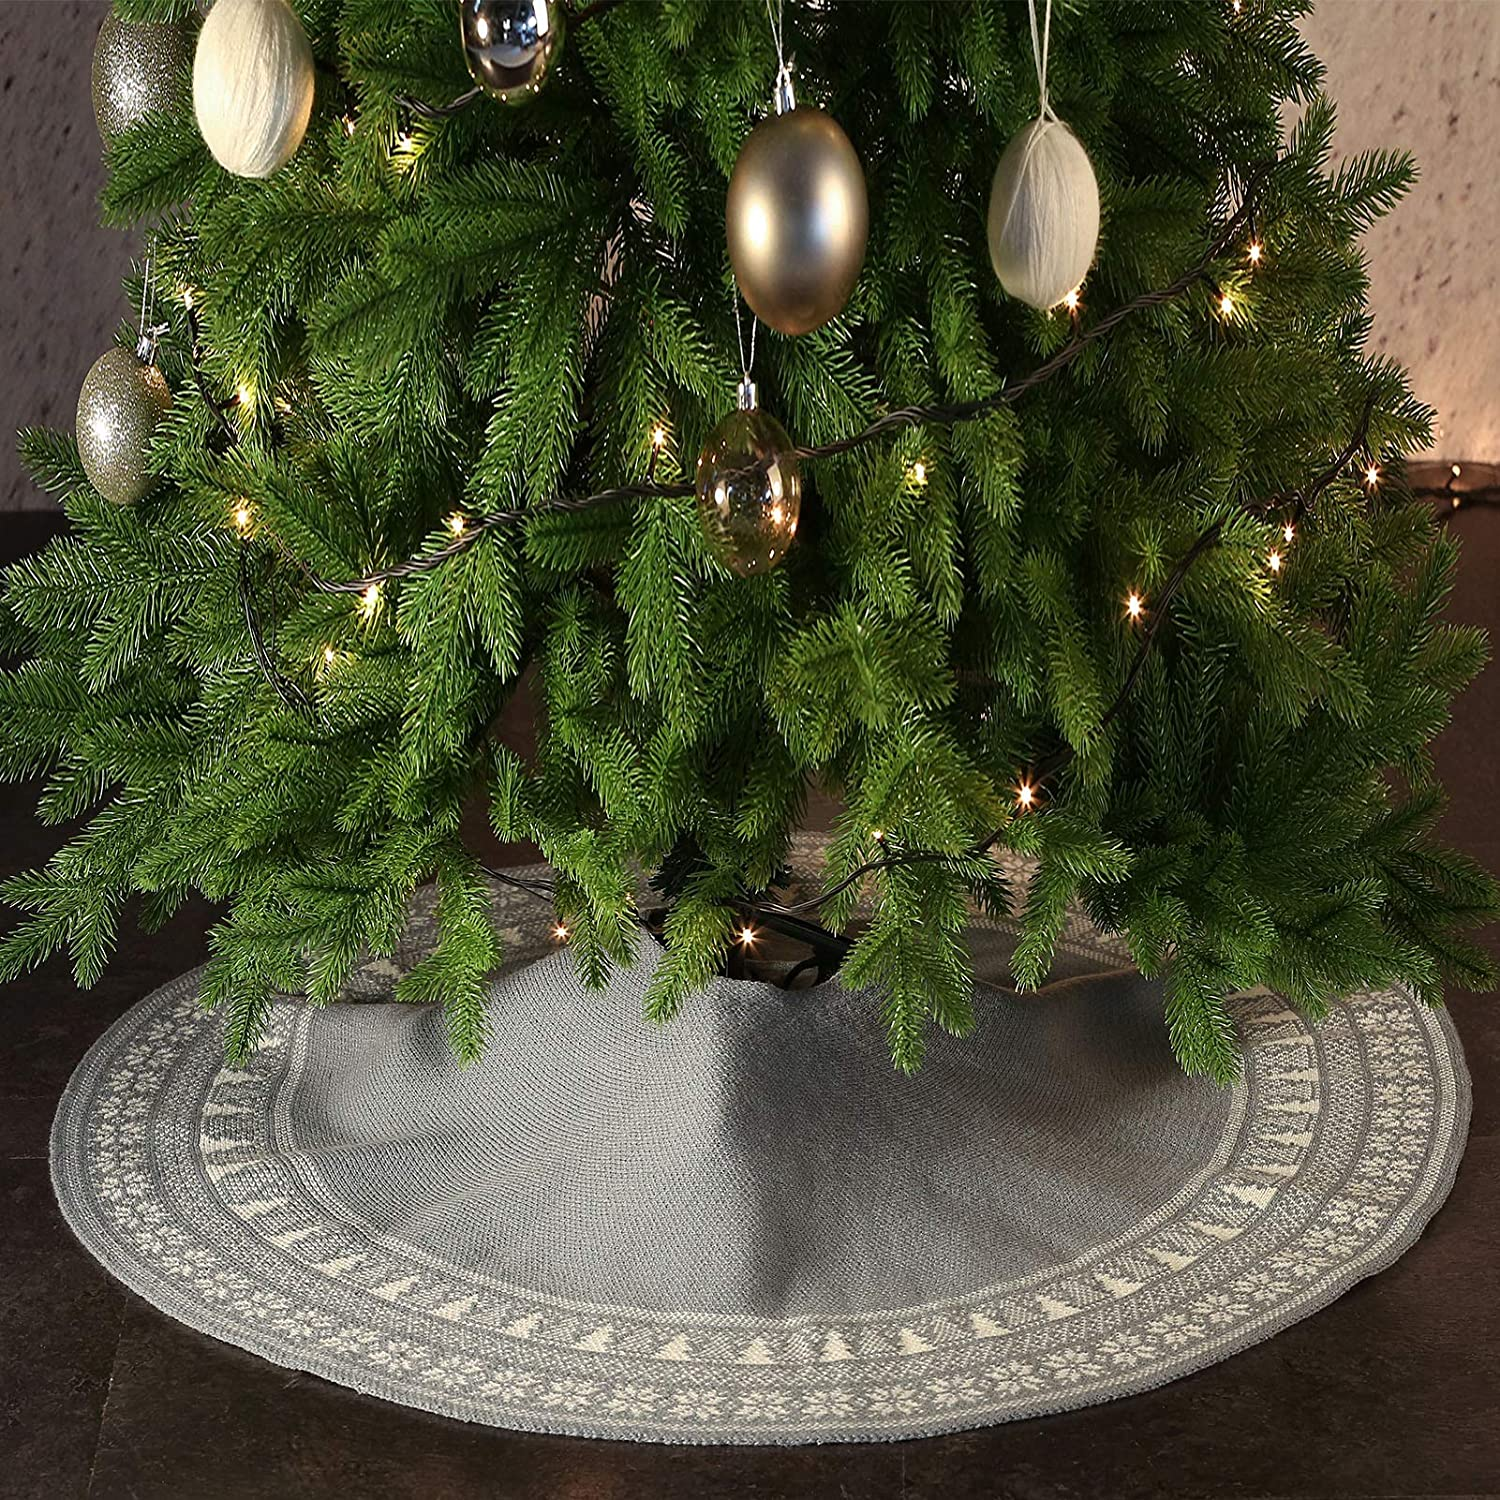 AOFEITE Christmas Tree Skirt 48 inches Large with Vintage Snowflake Border, Christmas Tree Decoration 6 to 8ft Tall Trees Suitable, Farmhouse Rustic Festive Xmas Holiday Décor Grey